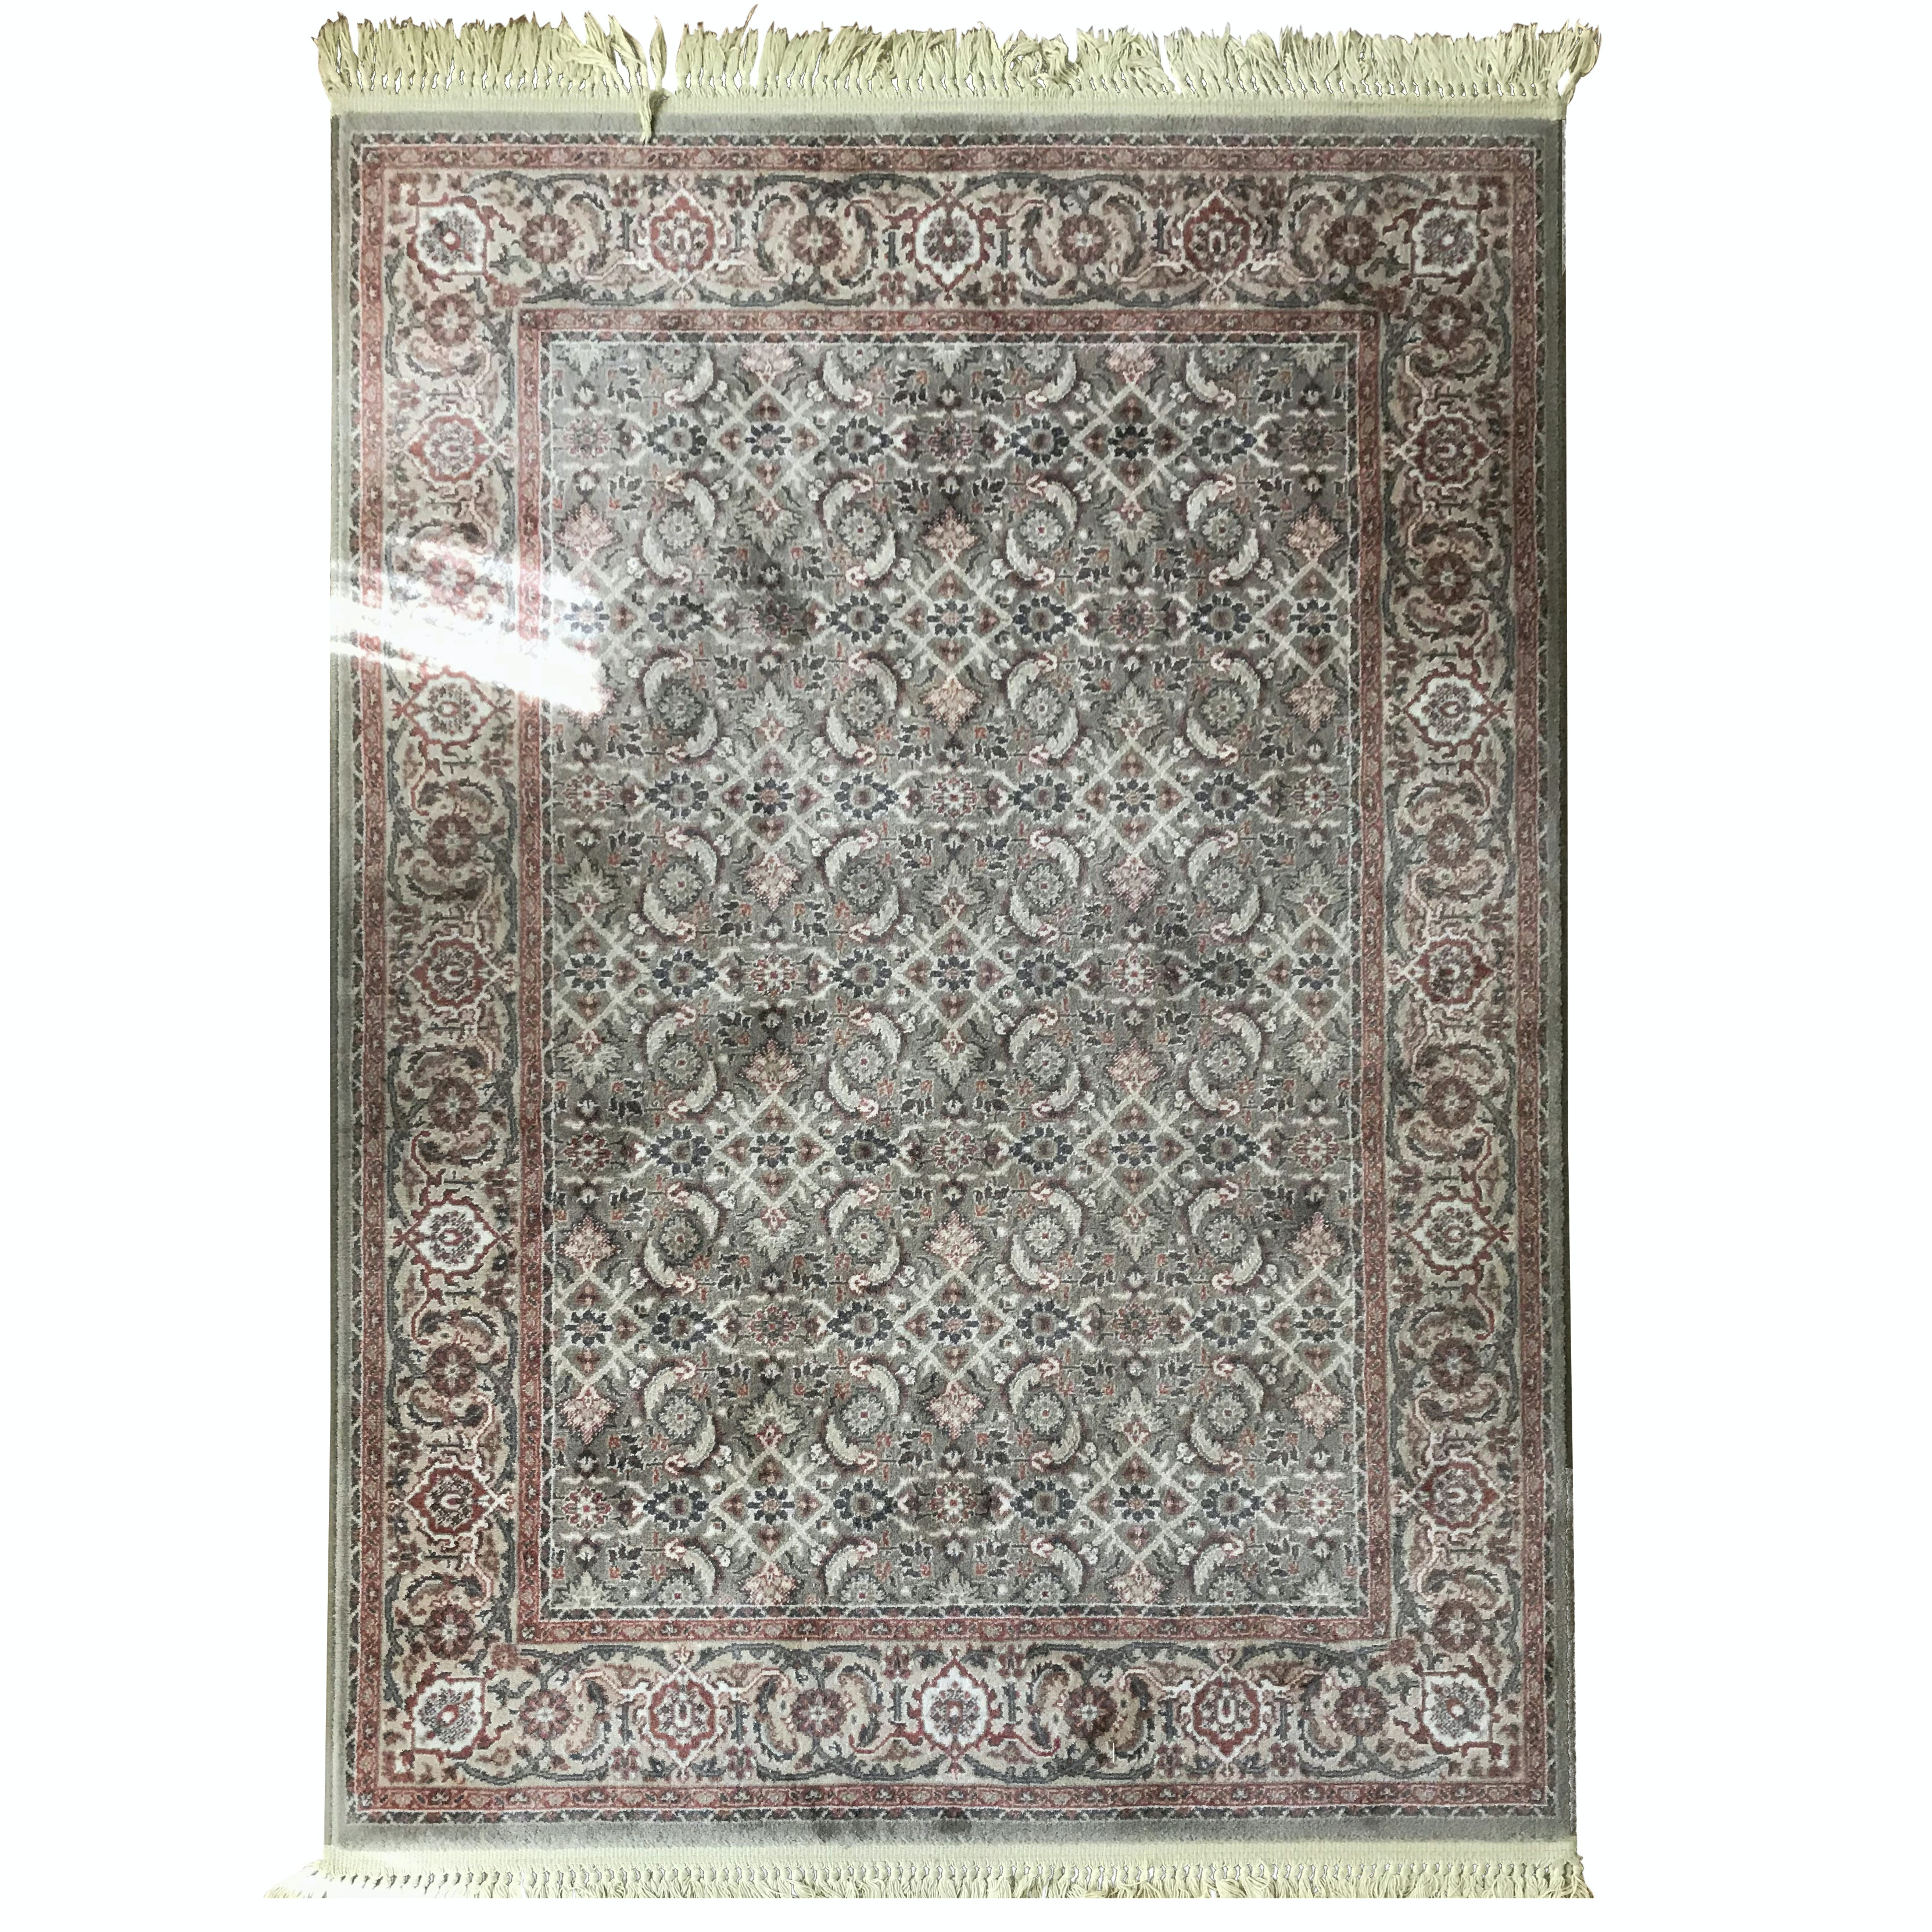 Power-Loomed Karastan Persian Style Wool Accent Rug